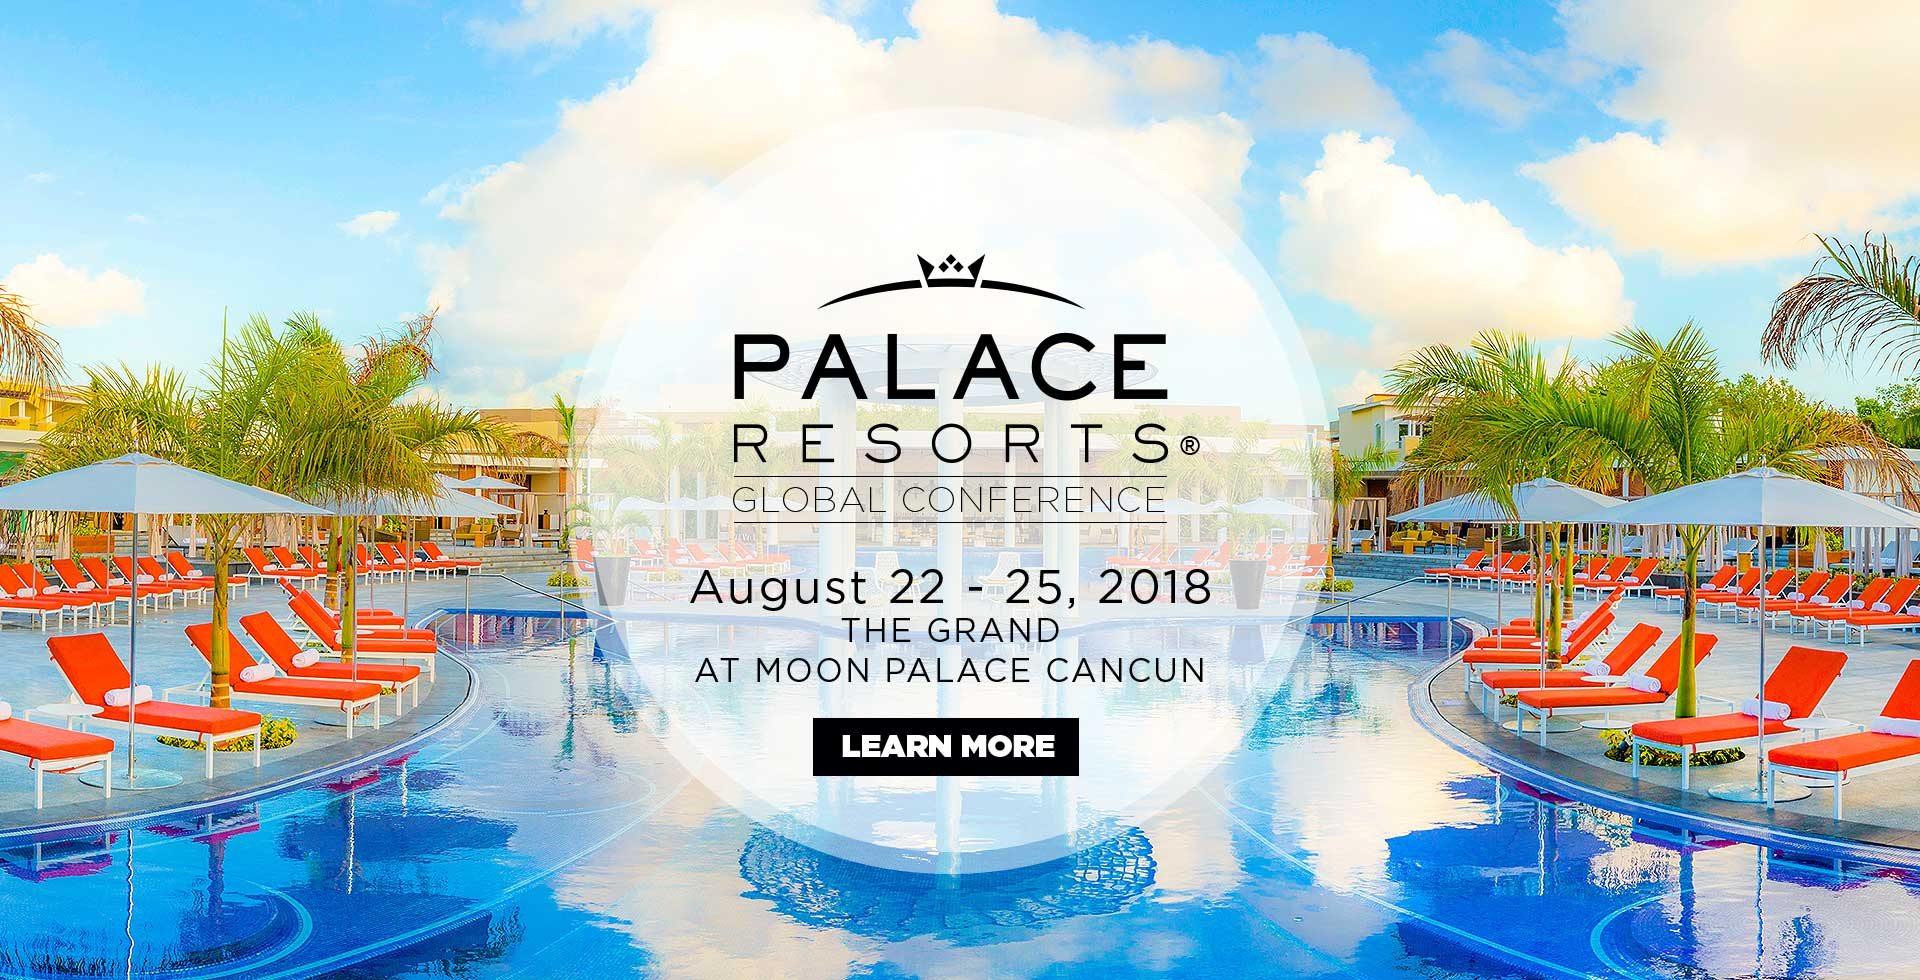 Palace Resorts Global Conference